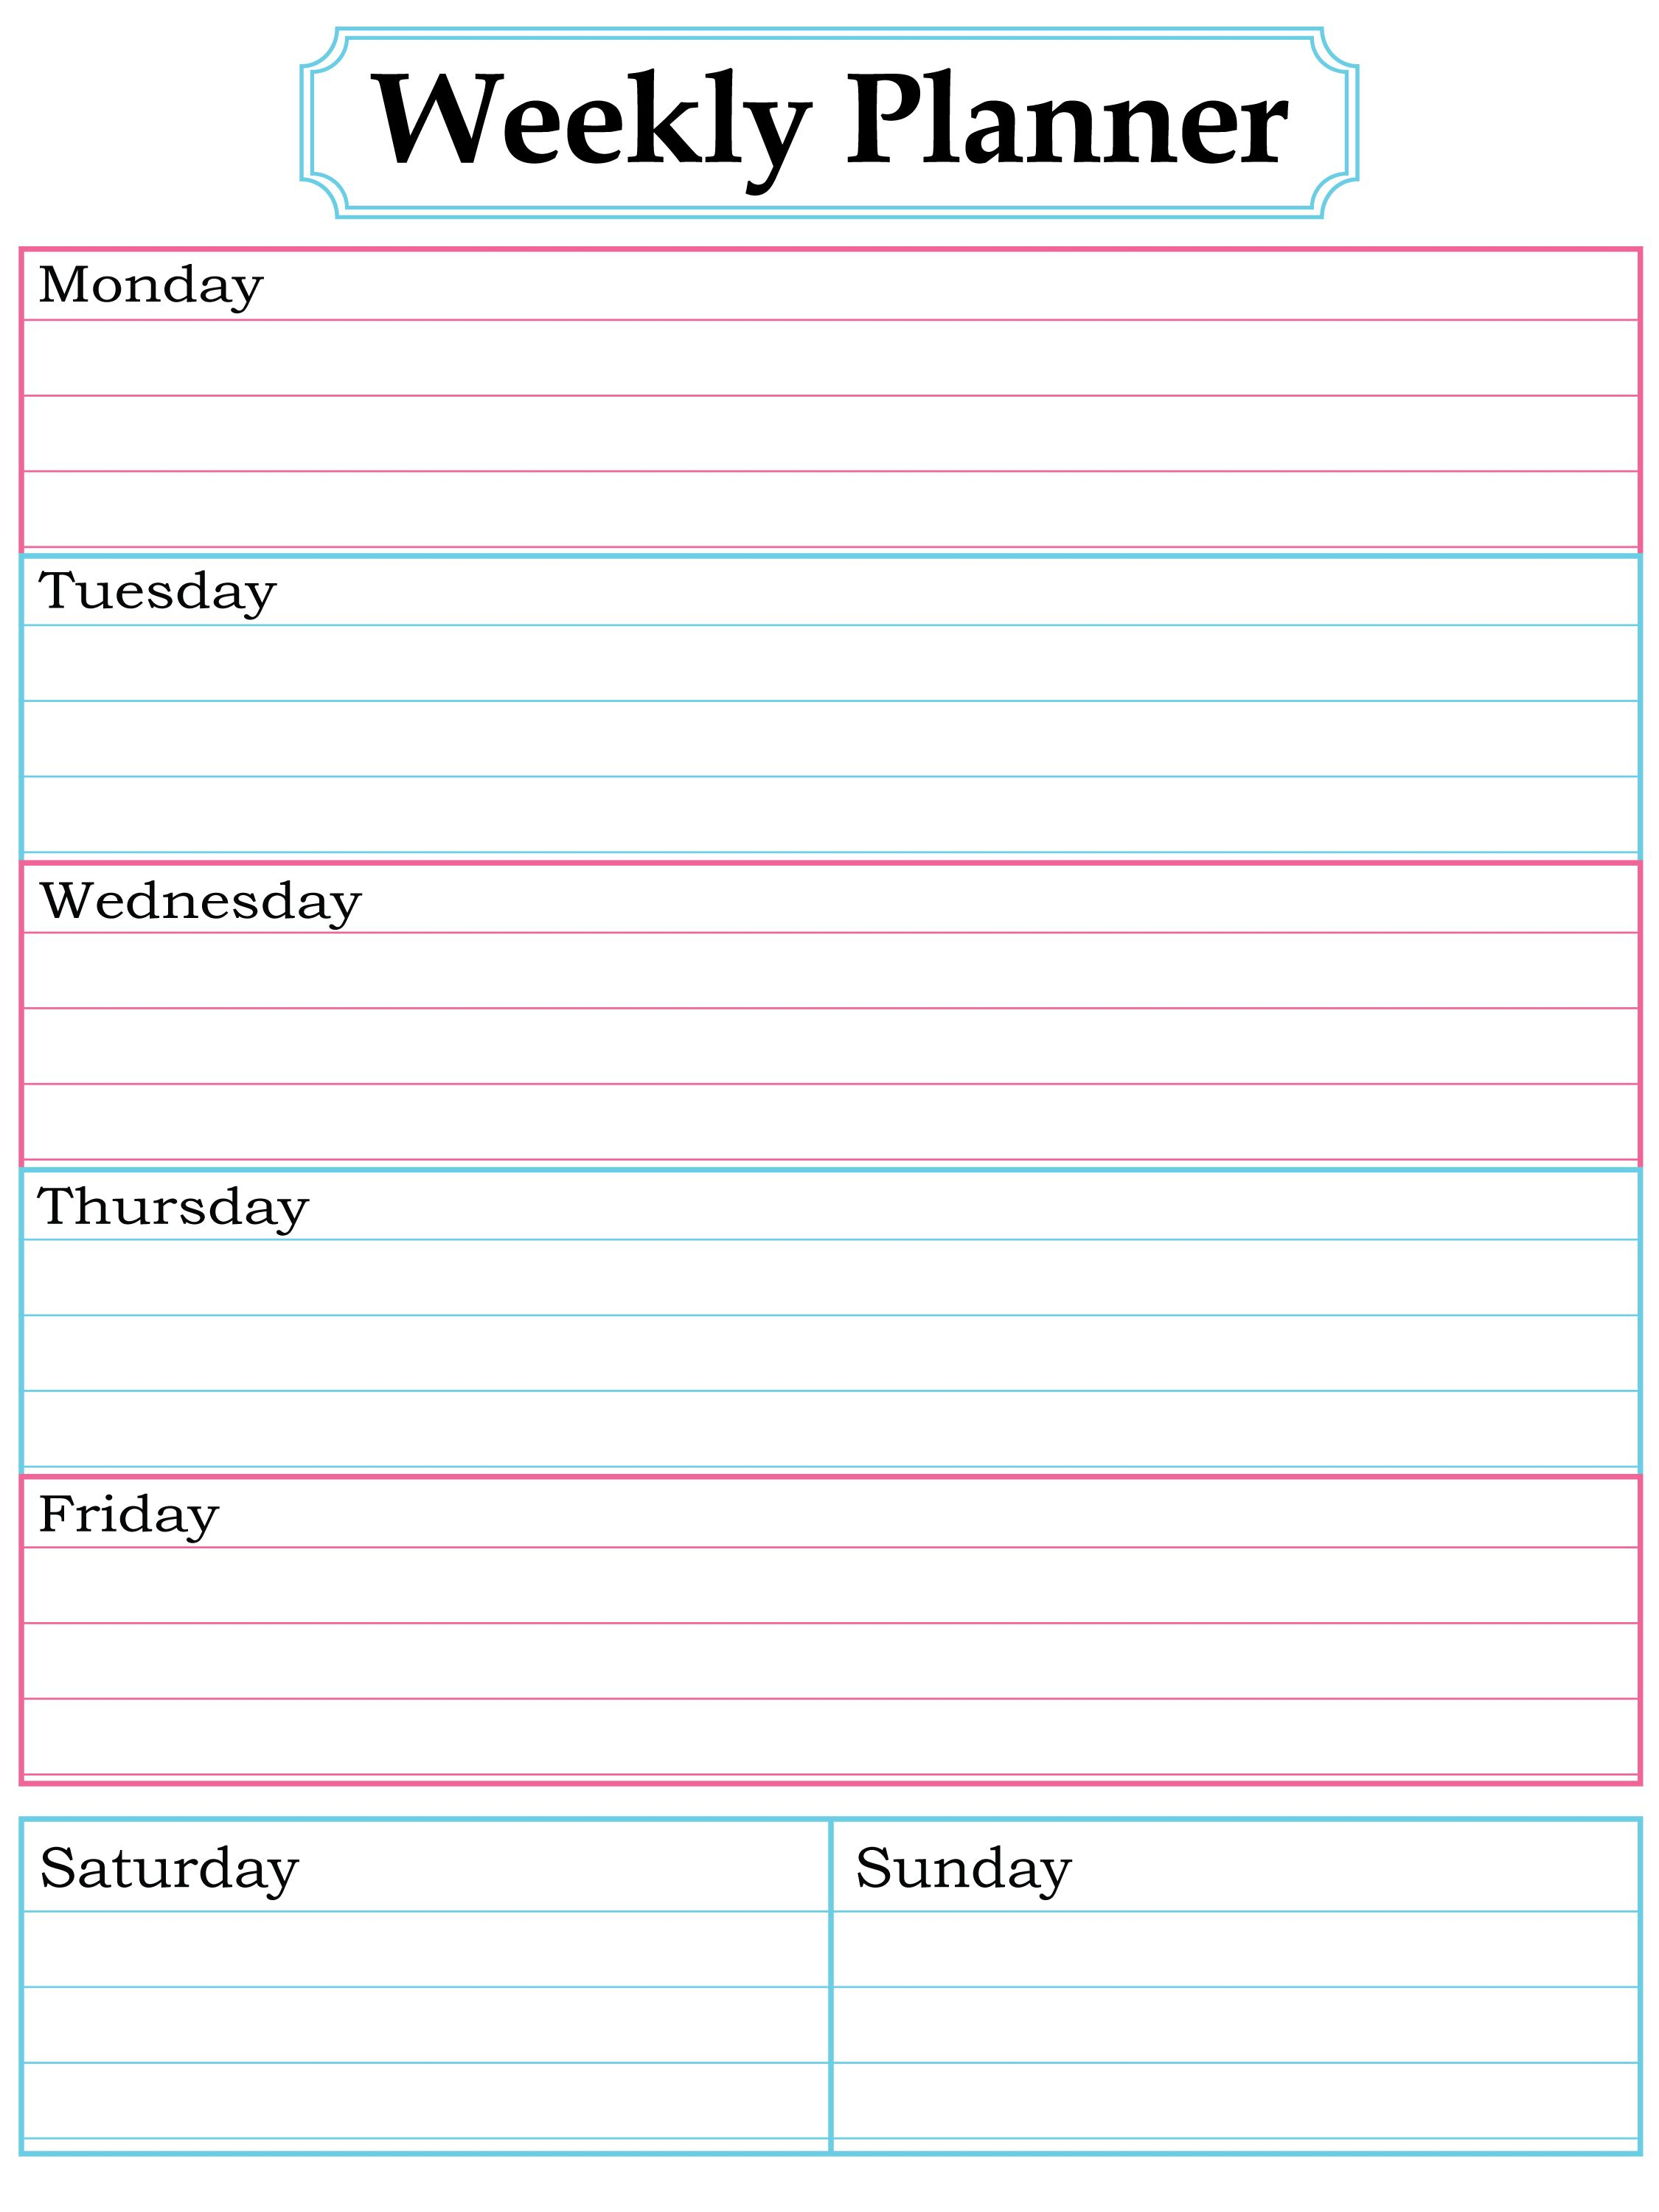 Weekly Schedule R Template Pdf Agenda Excel | Smorad within Cute Blank Day Calender Templates